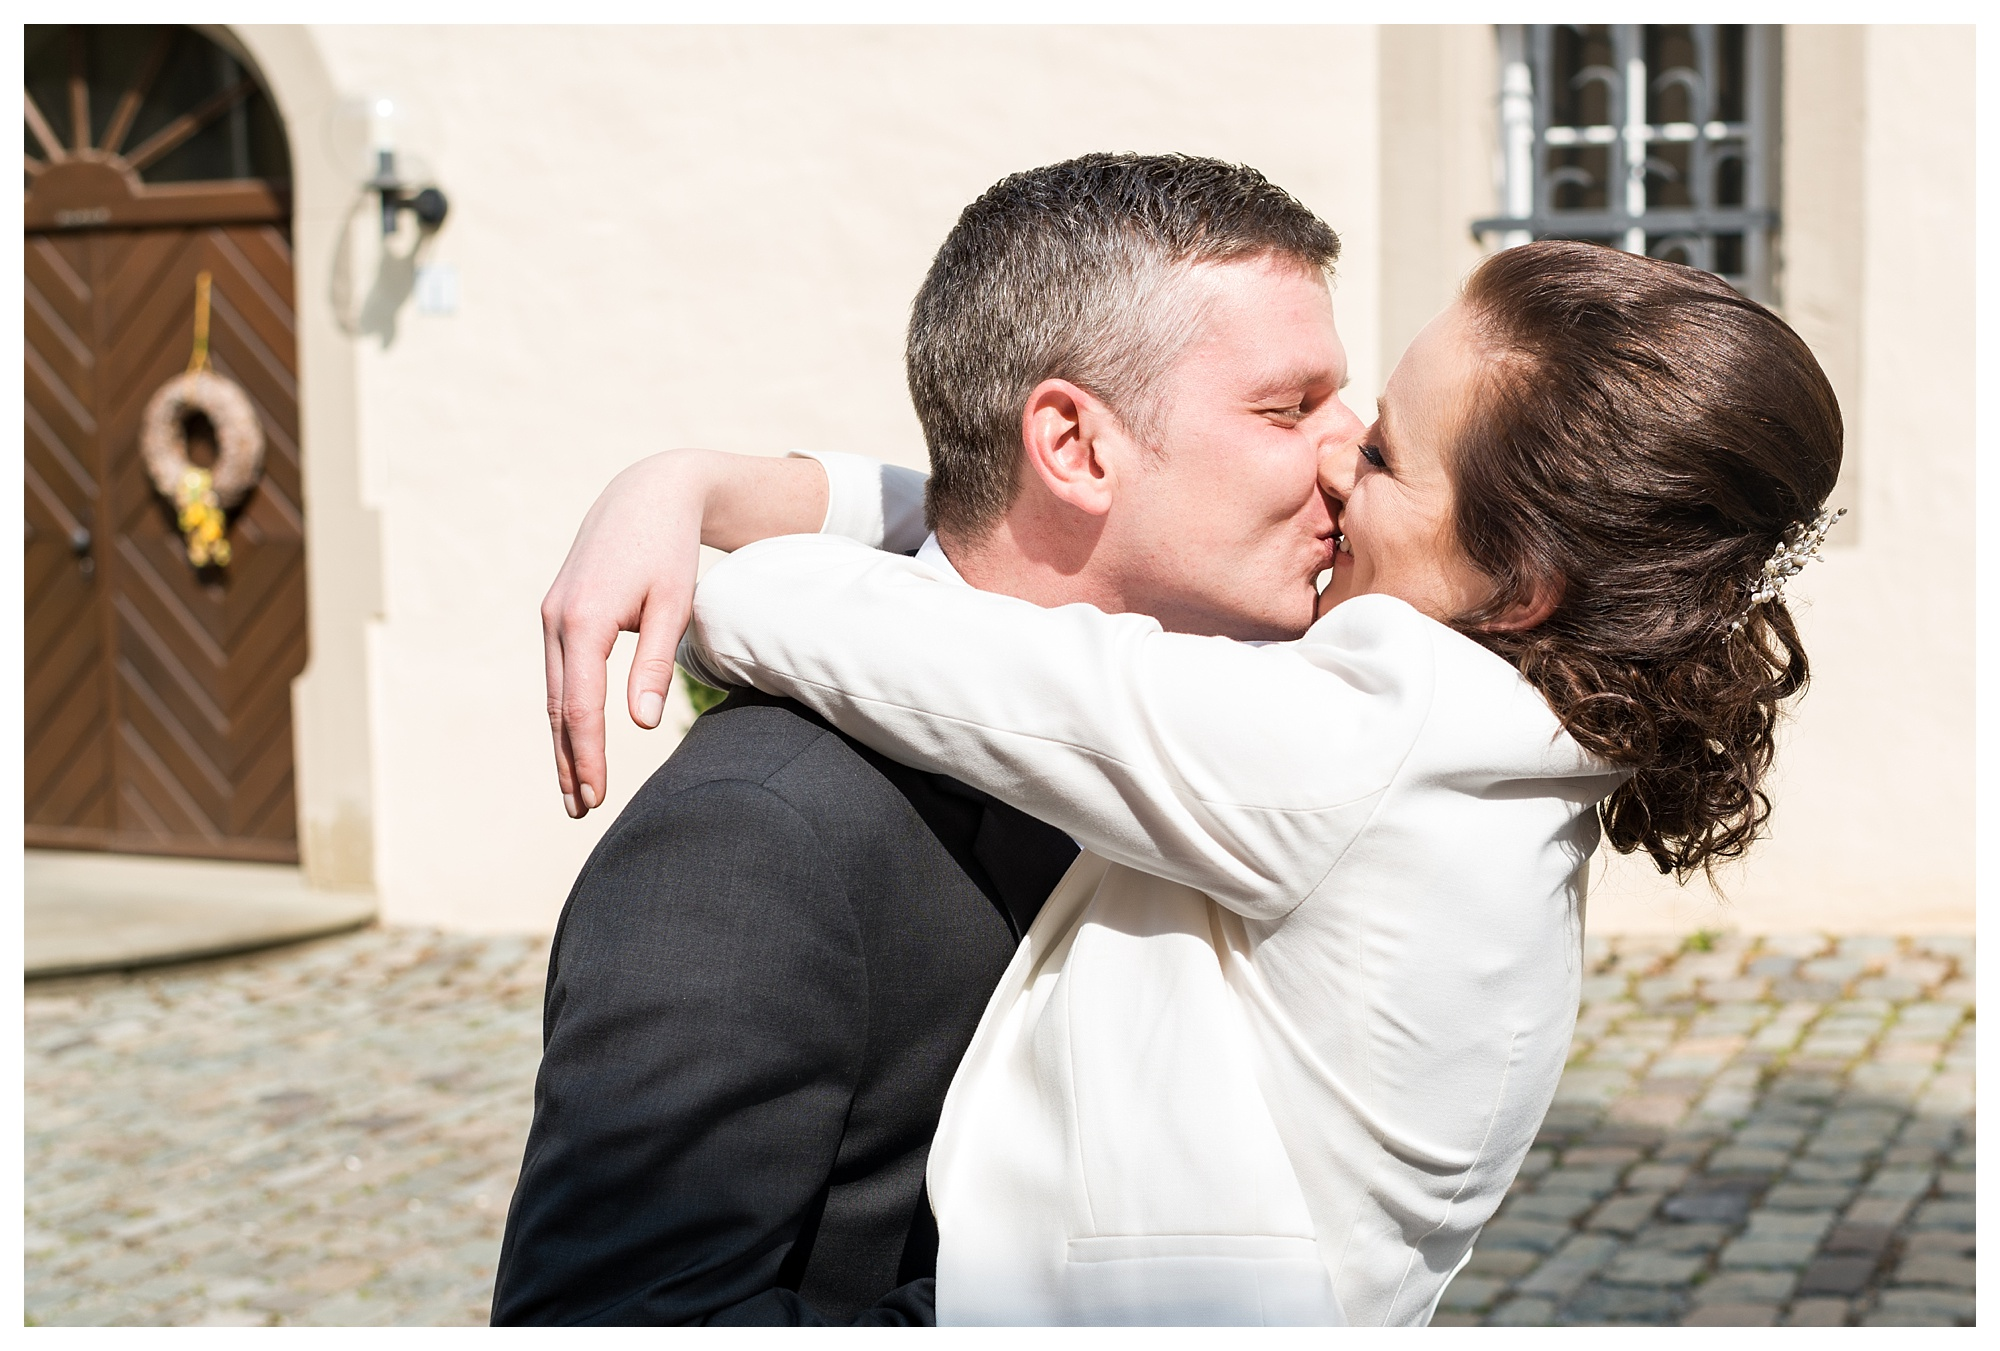 Fotograf Konstanz - Hochzeitsreportage Bettina Martin Heilbronn Elmar Feuerbacher Photography 13 - Wedding Story in Schöntal close to Heilbronn  - 83 -